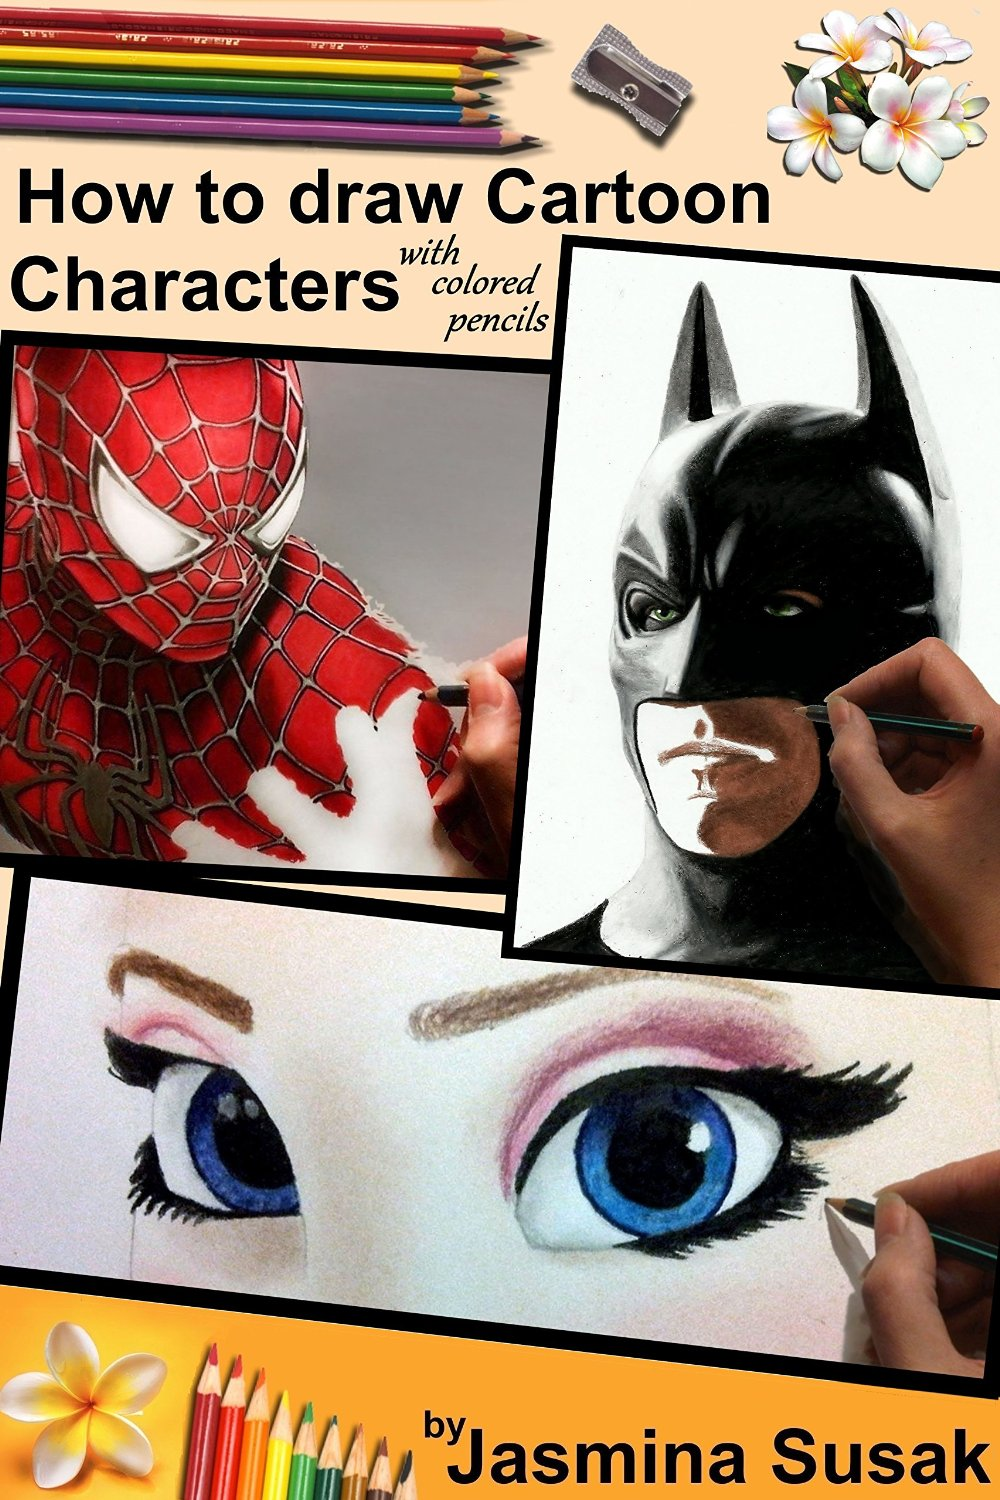 How to draw cartoon characters with colored pencils: in realistic style free download